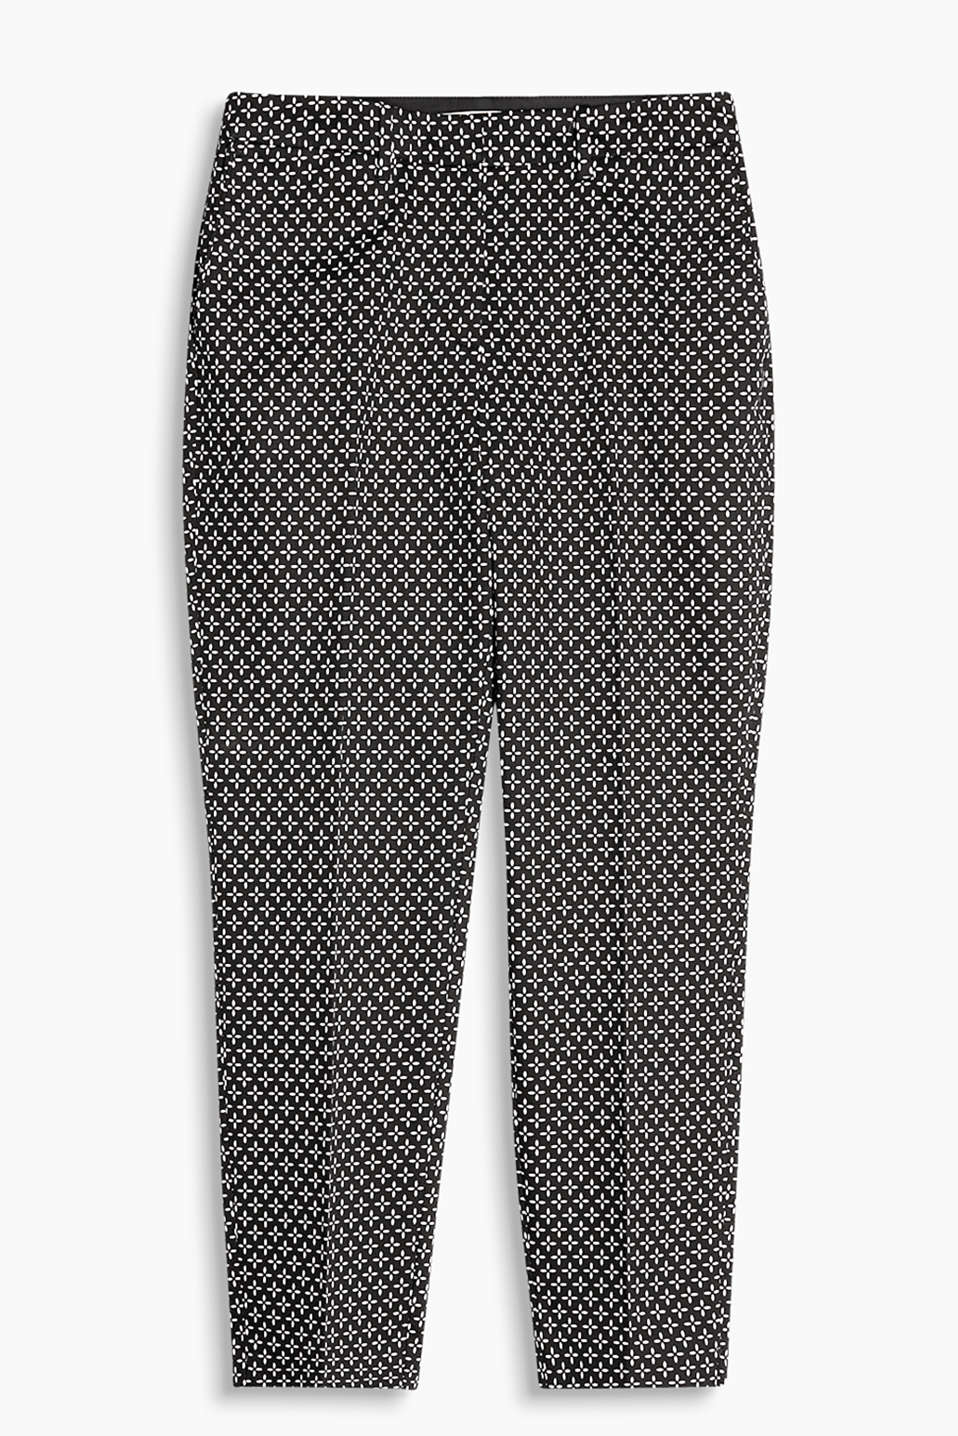 Cropped cigarette trousers made of stretch cotton